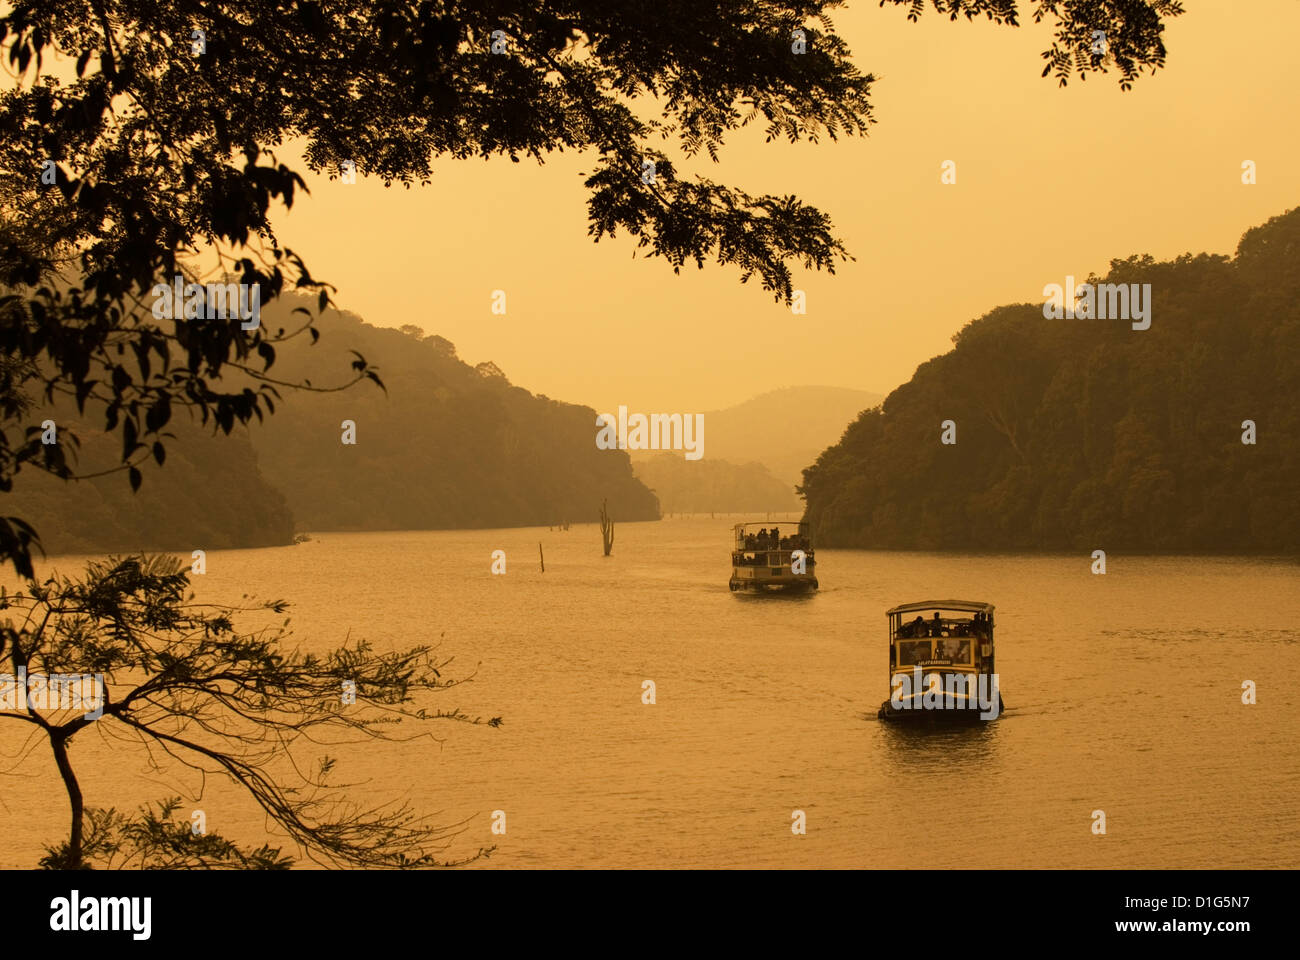 Tour boats cruising on lake, Lake Periyar, Kerala, India, Asia - Stock Image